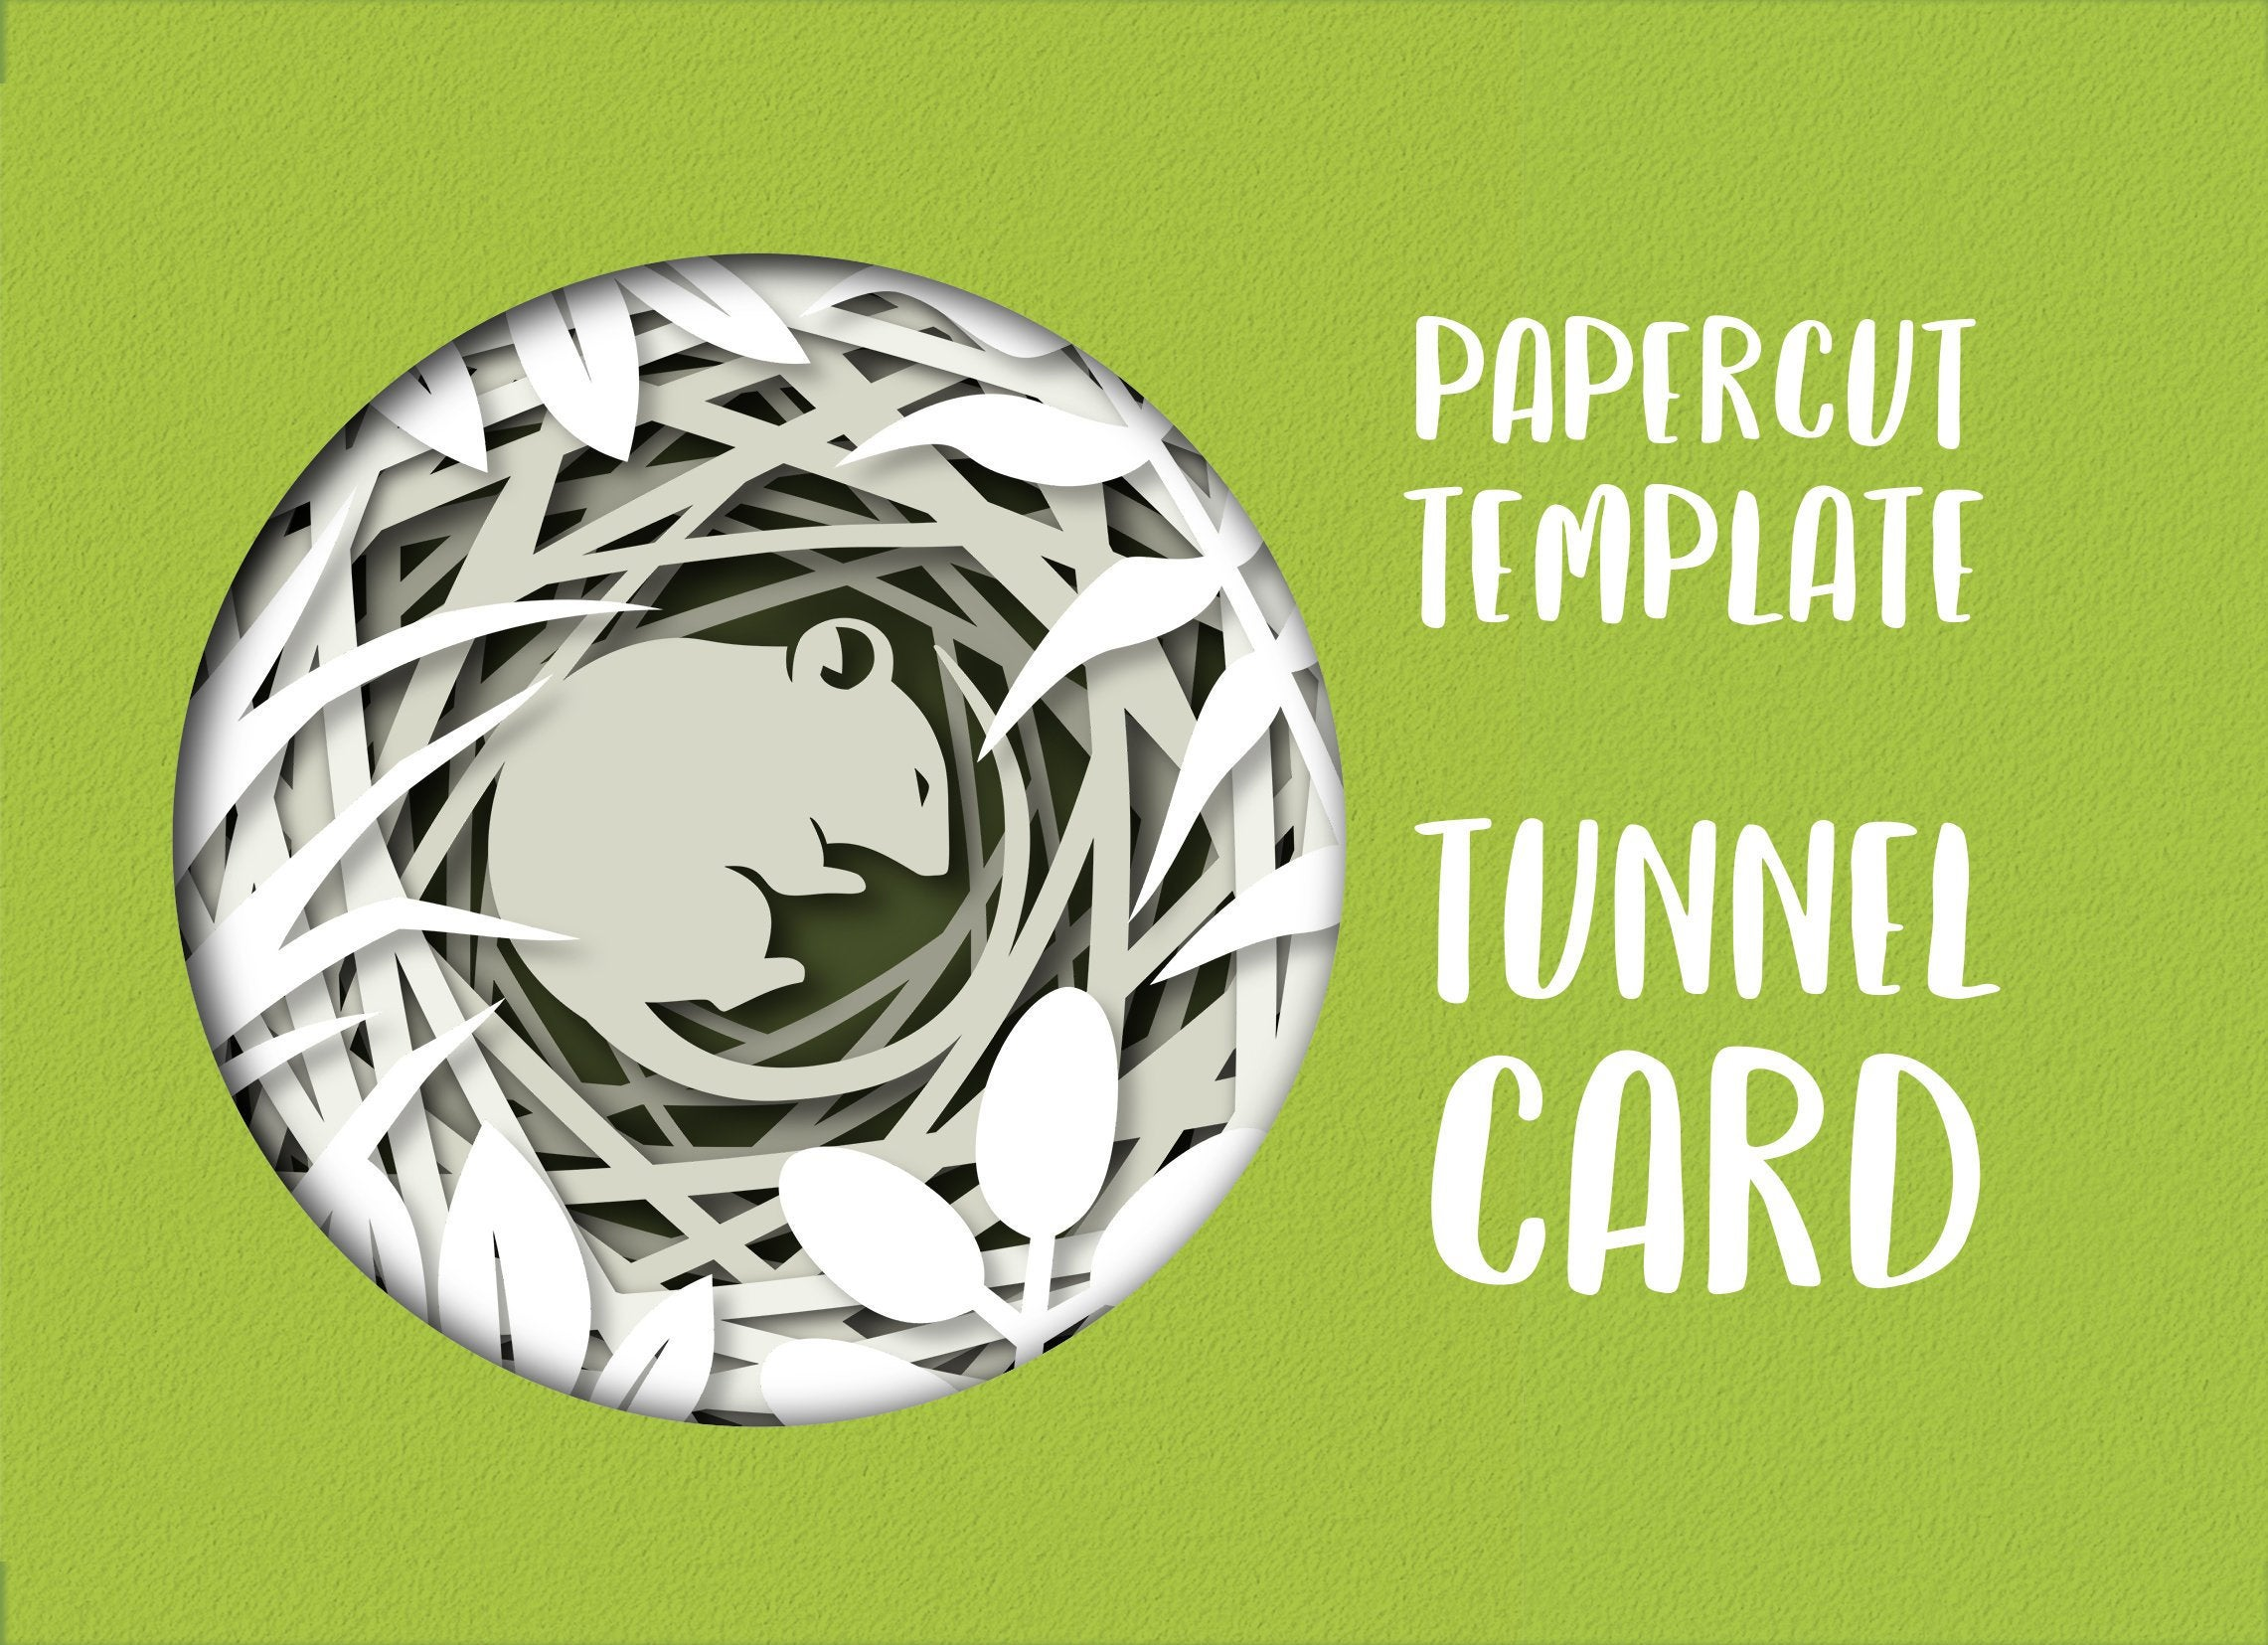 greenpineforest-papercut-template-tunnel-card-mouse.jpg